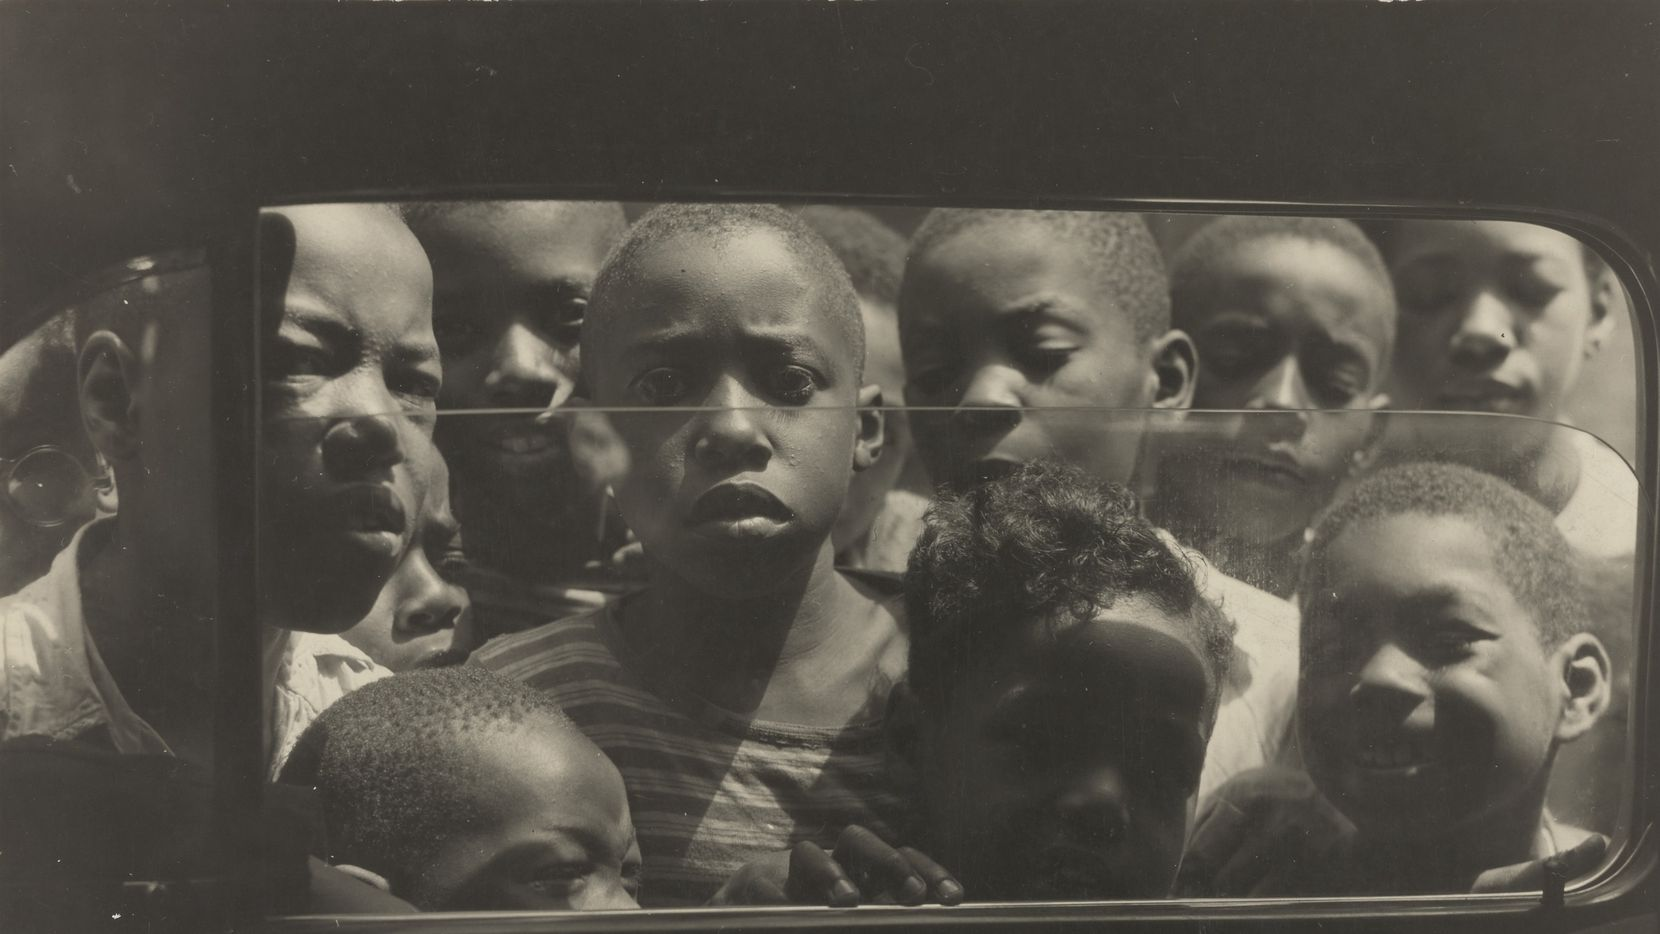 """Gordon Parks: The New Tide, Early Work 1940-1950,"" currently on view at the Amon Carter Museum, looks at the beginnings of the famed photographer's career."